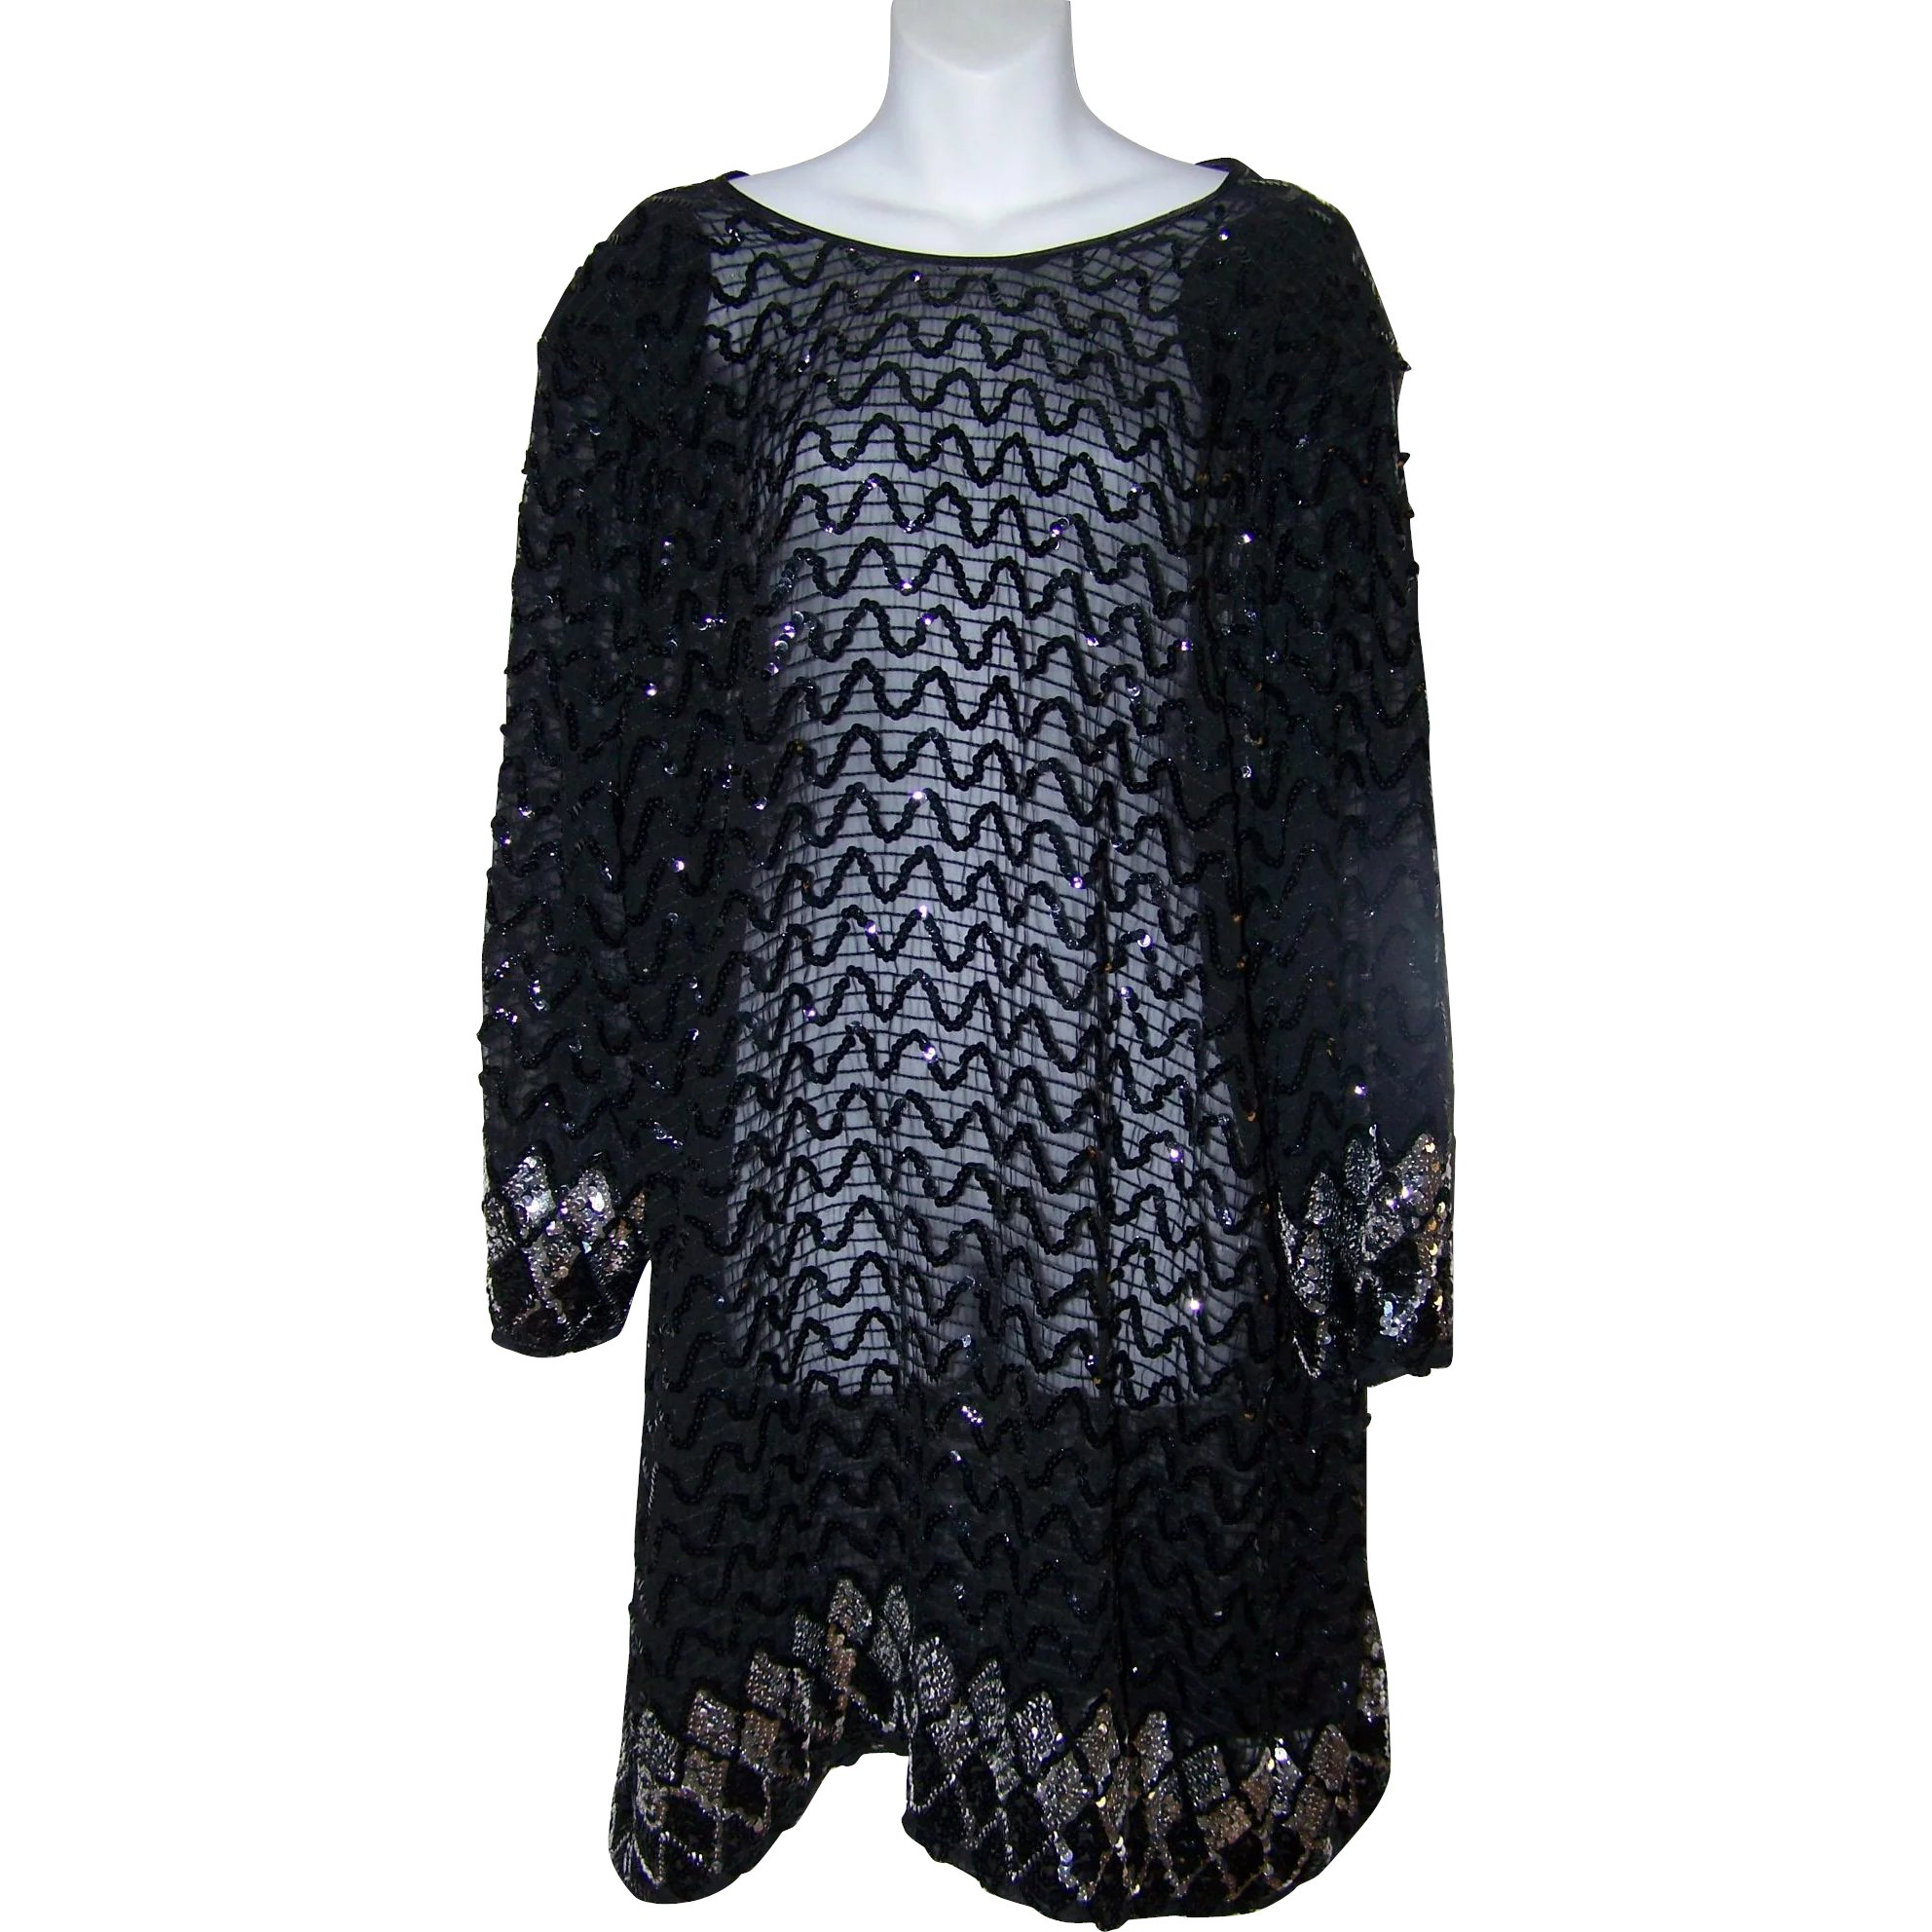 3806d223701 Striking Vintage Black Sequin Ladies Fashion Dress Size 18   Victoria s  Purrrrfect Treasures